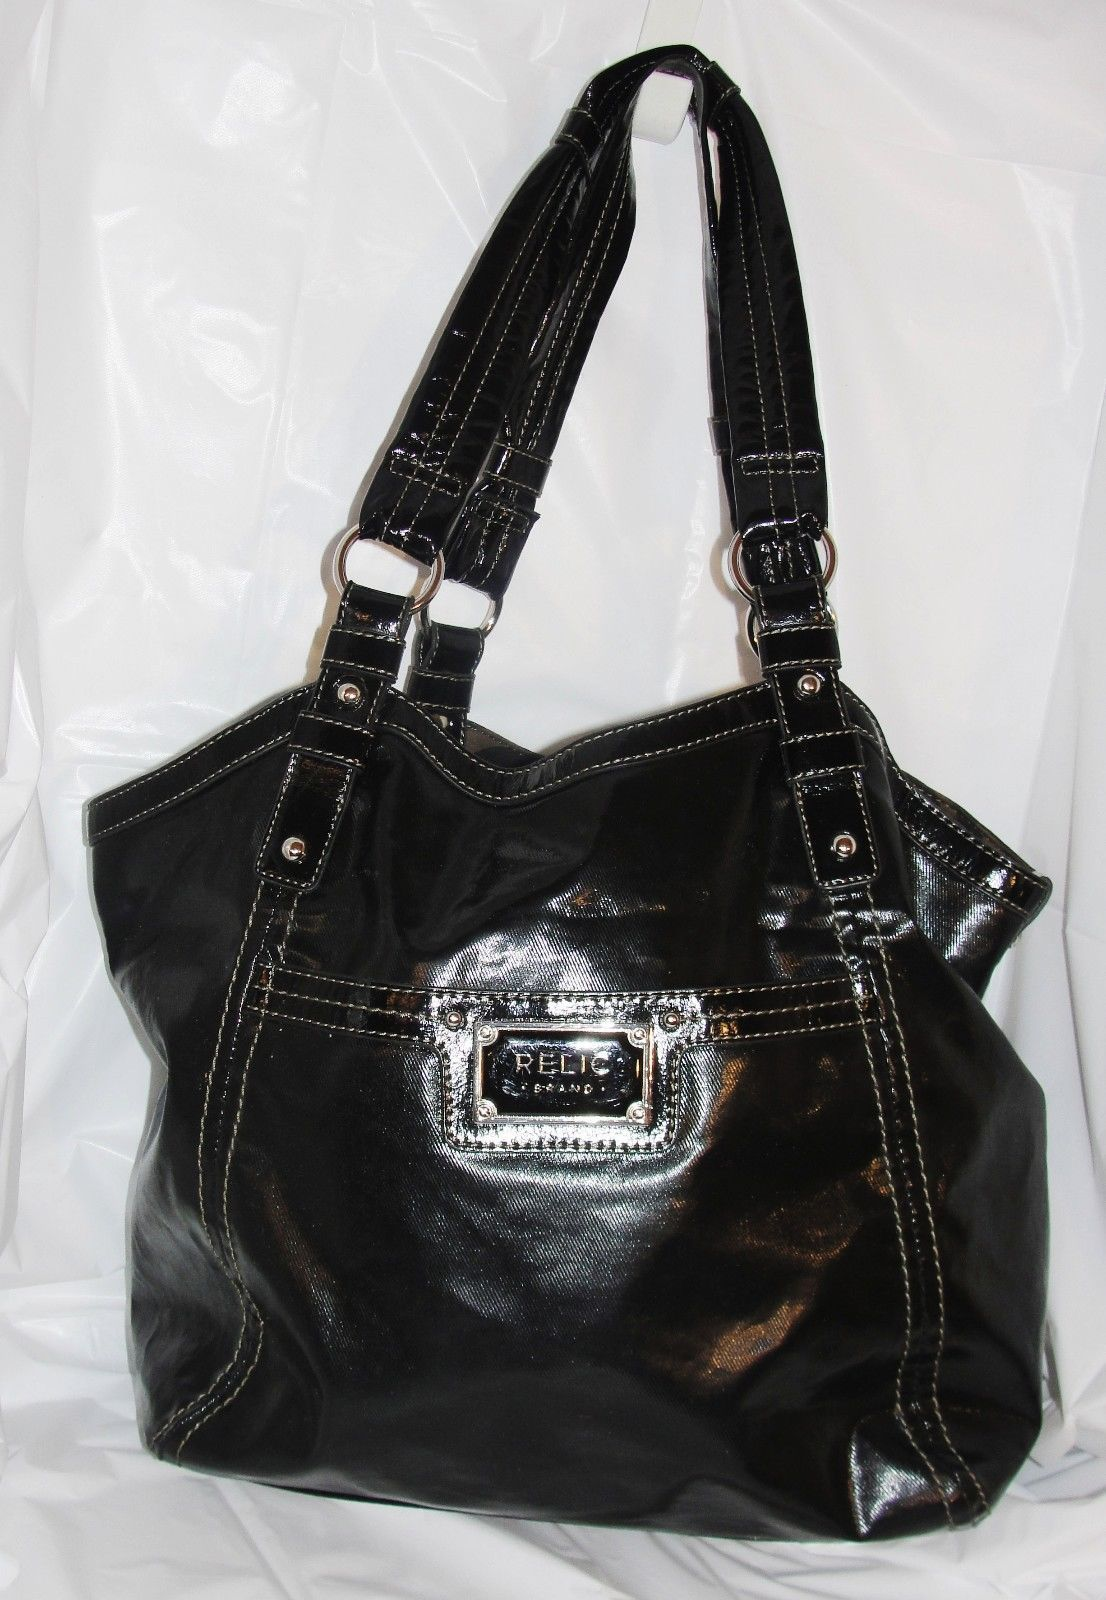 RELIC BRAND X-Large Tote/Shopper Shoulder Handbag Black Patent/Vinyl